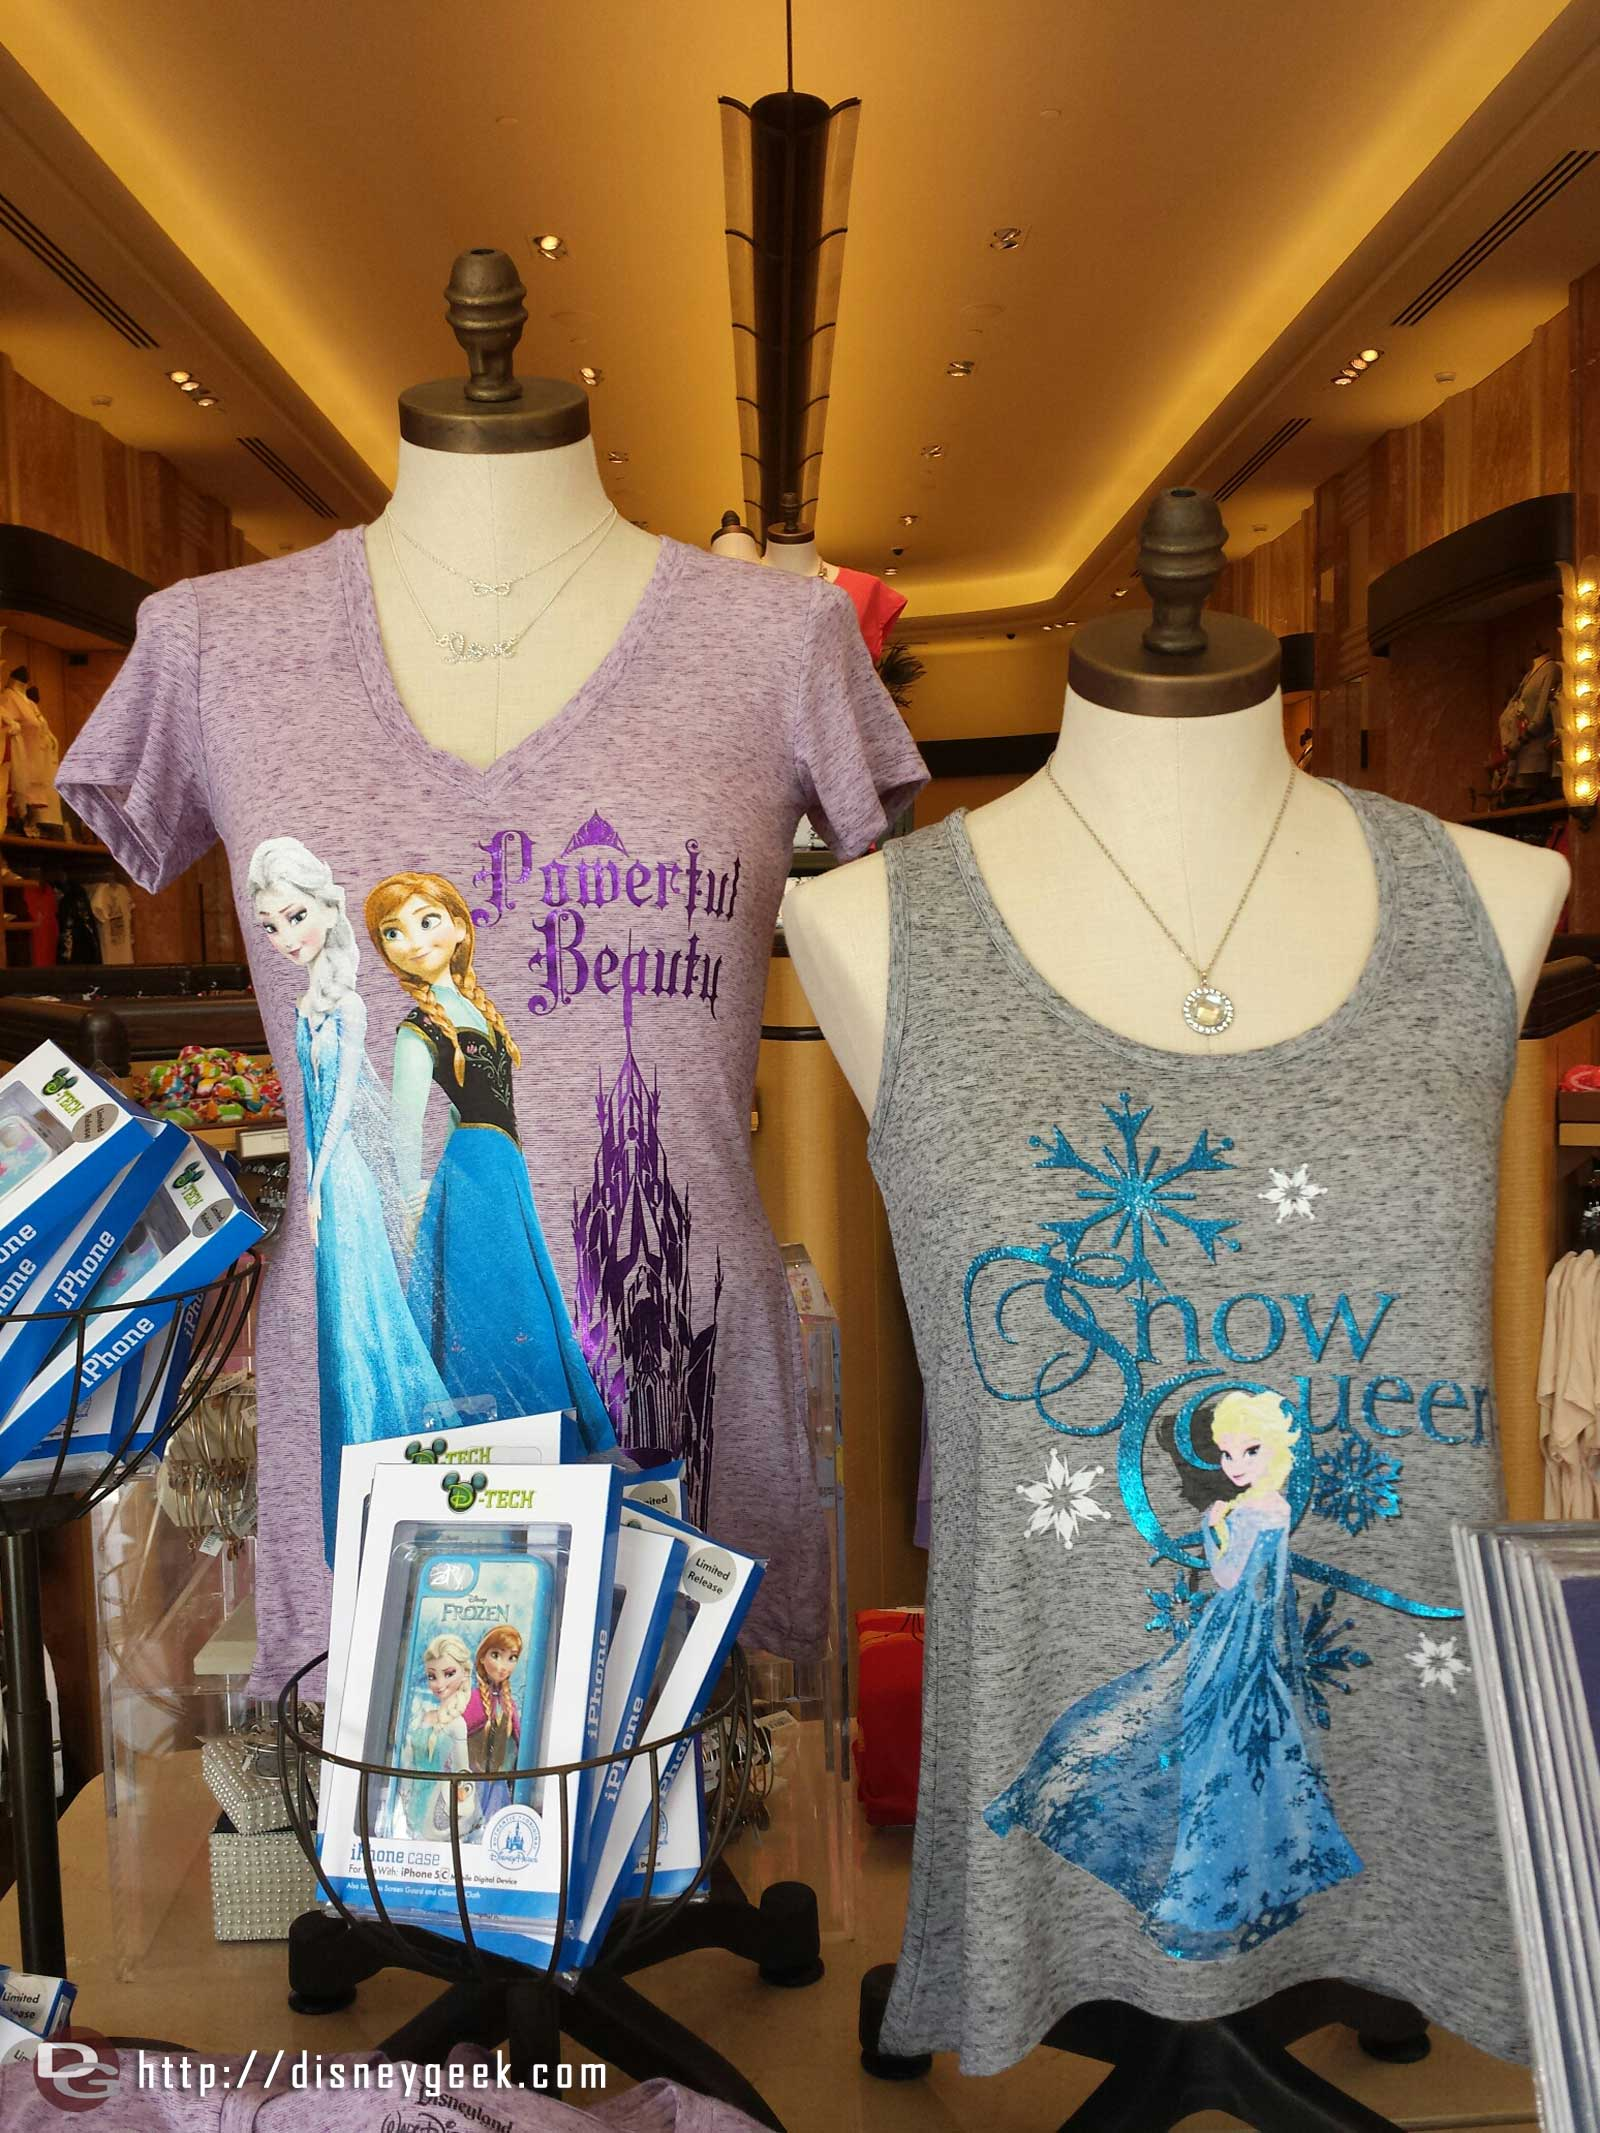 Walking through Elias & Co and noticed this Elsa shirt calling her the Snow Queen #Frozen